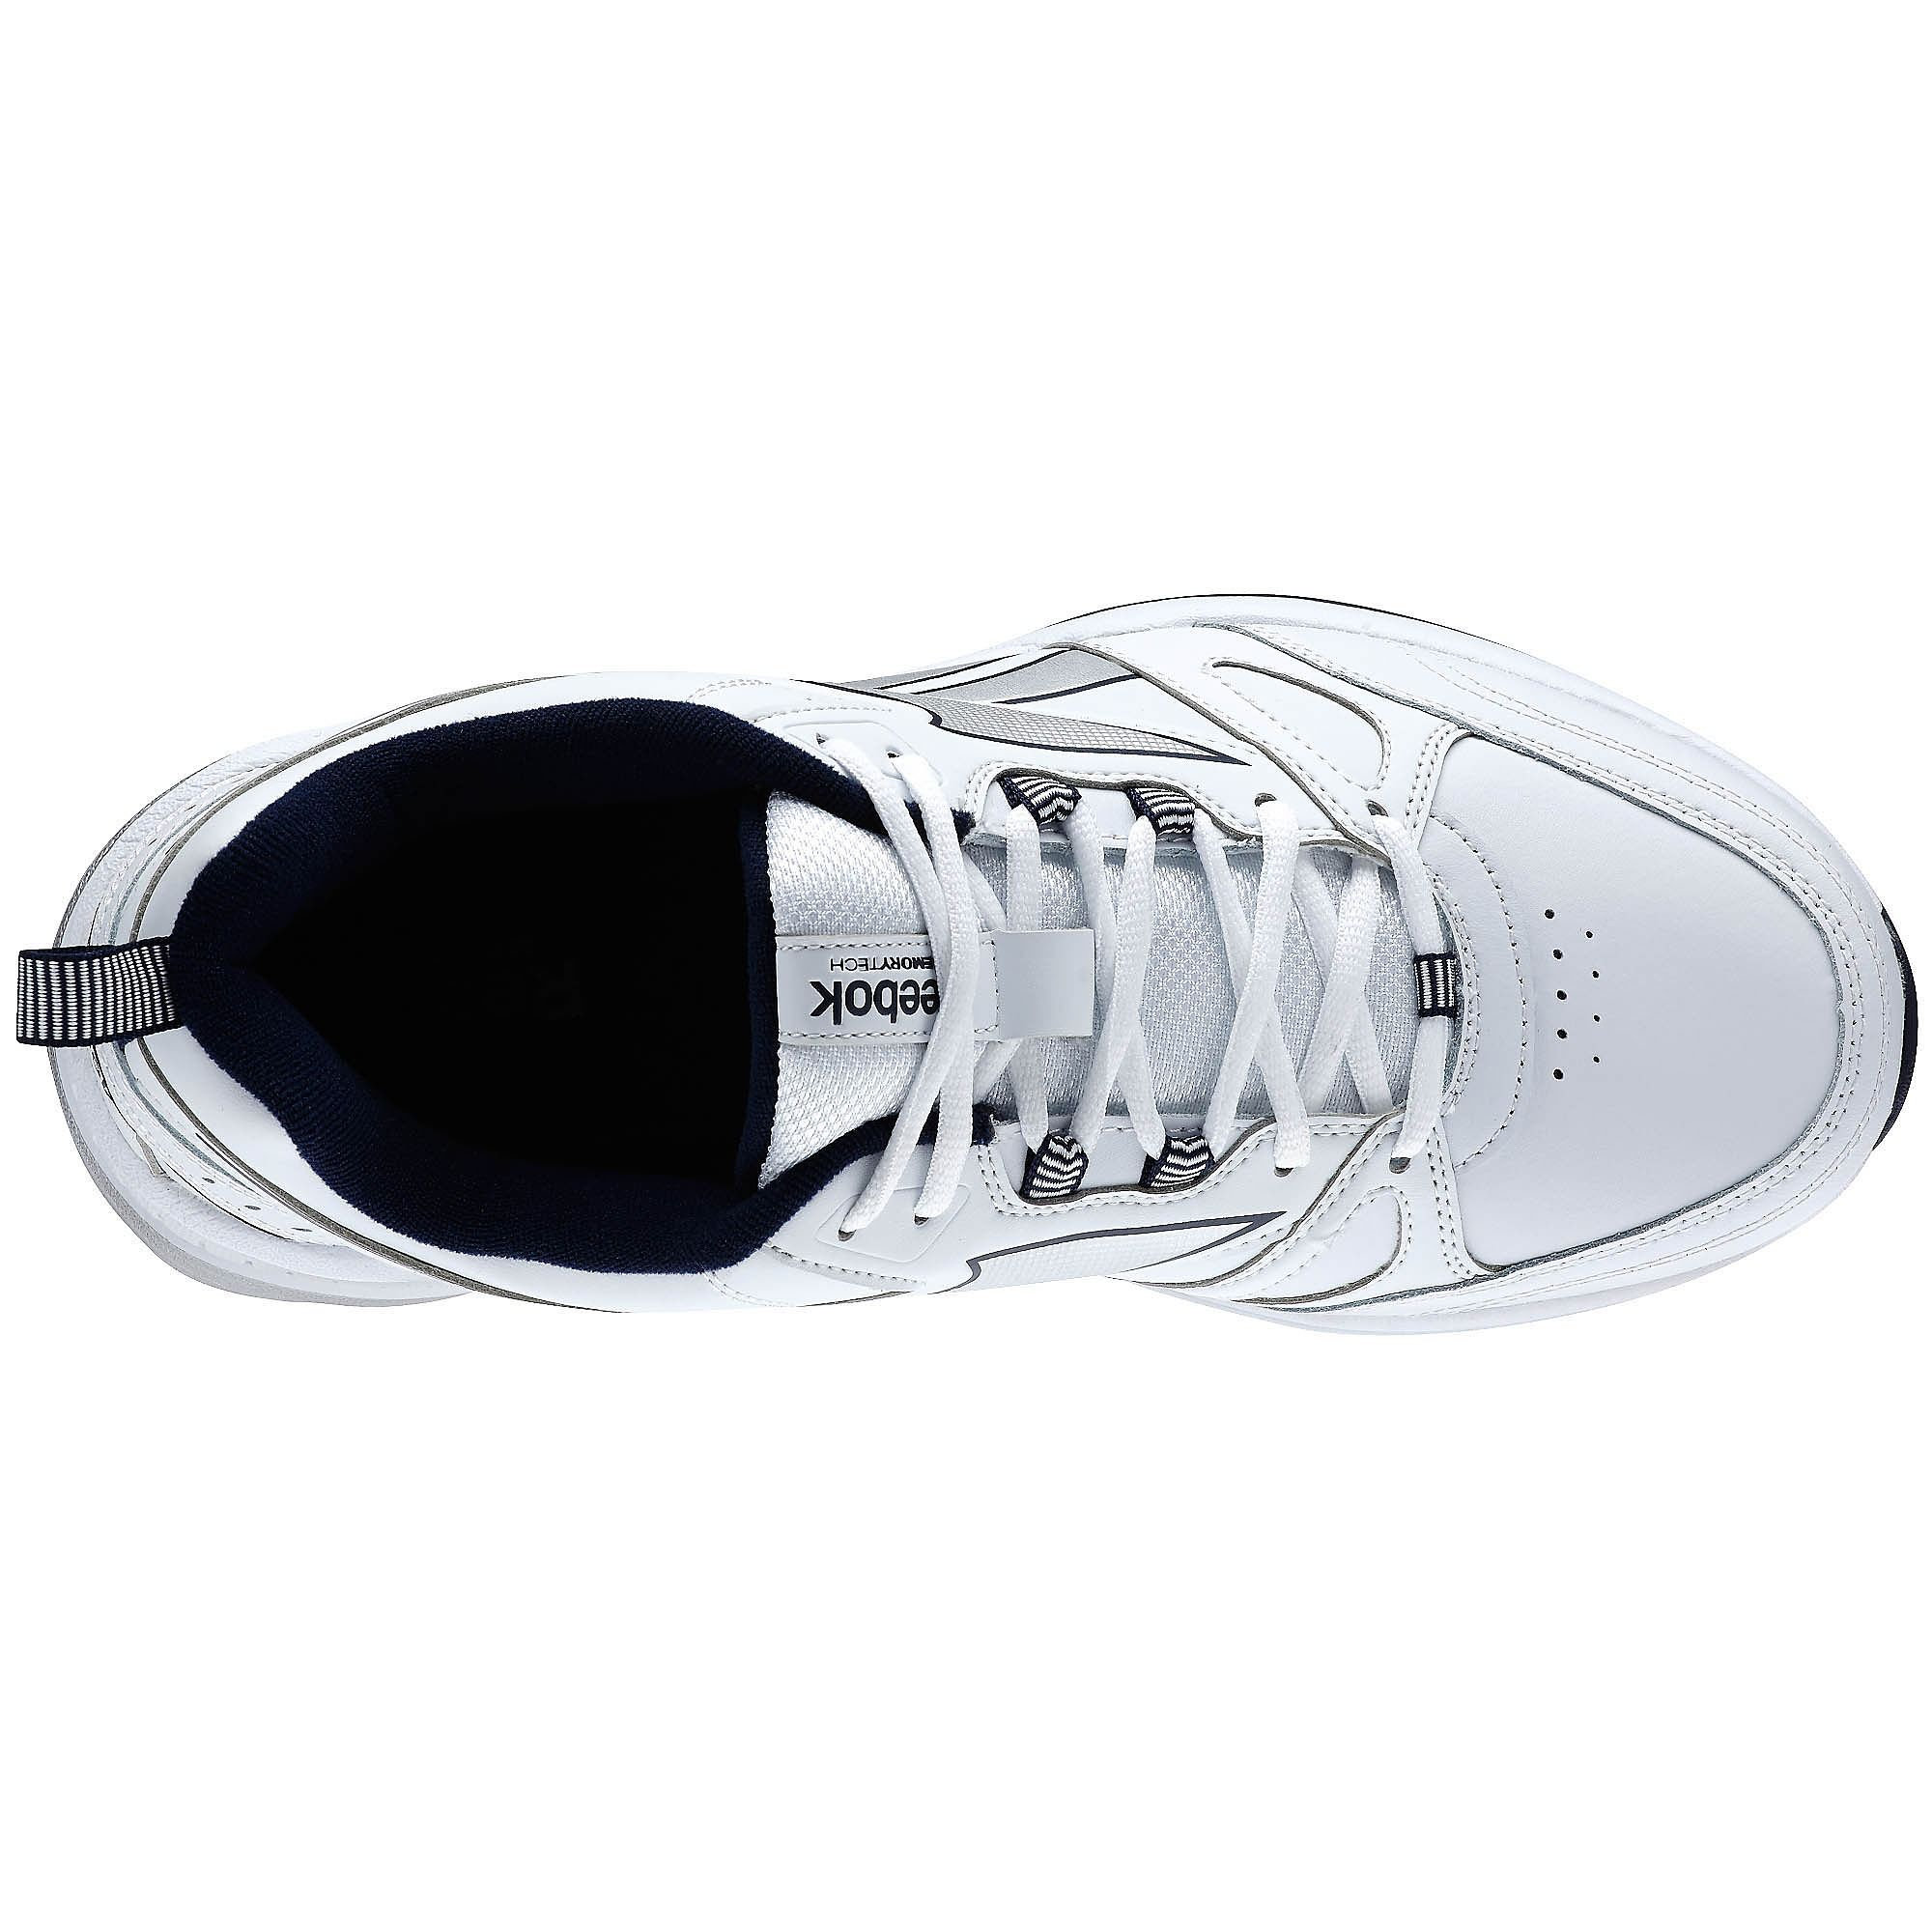 These Reebok® men s Royal Trainer MT walking shoes deliver sporty style for  the street and support throughout your workouts. DMX Ride midsole foam  provides ... cf842d73c